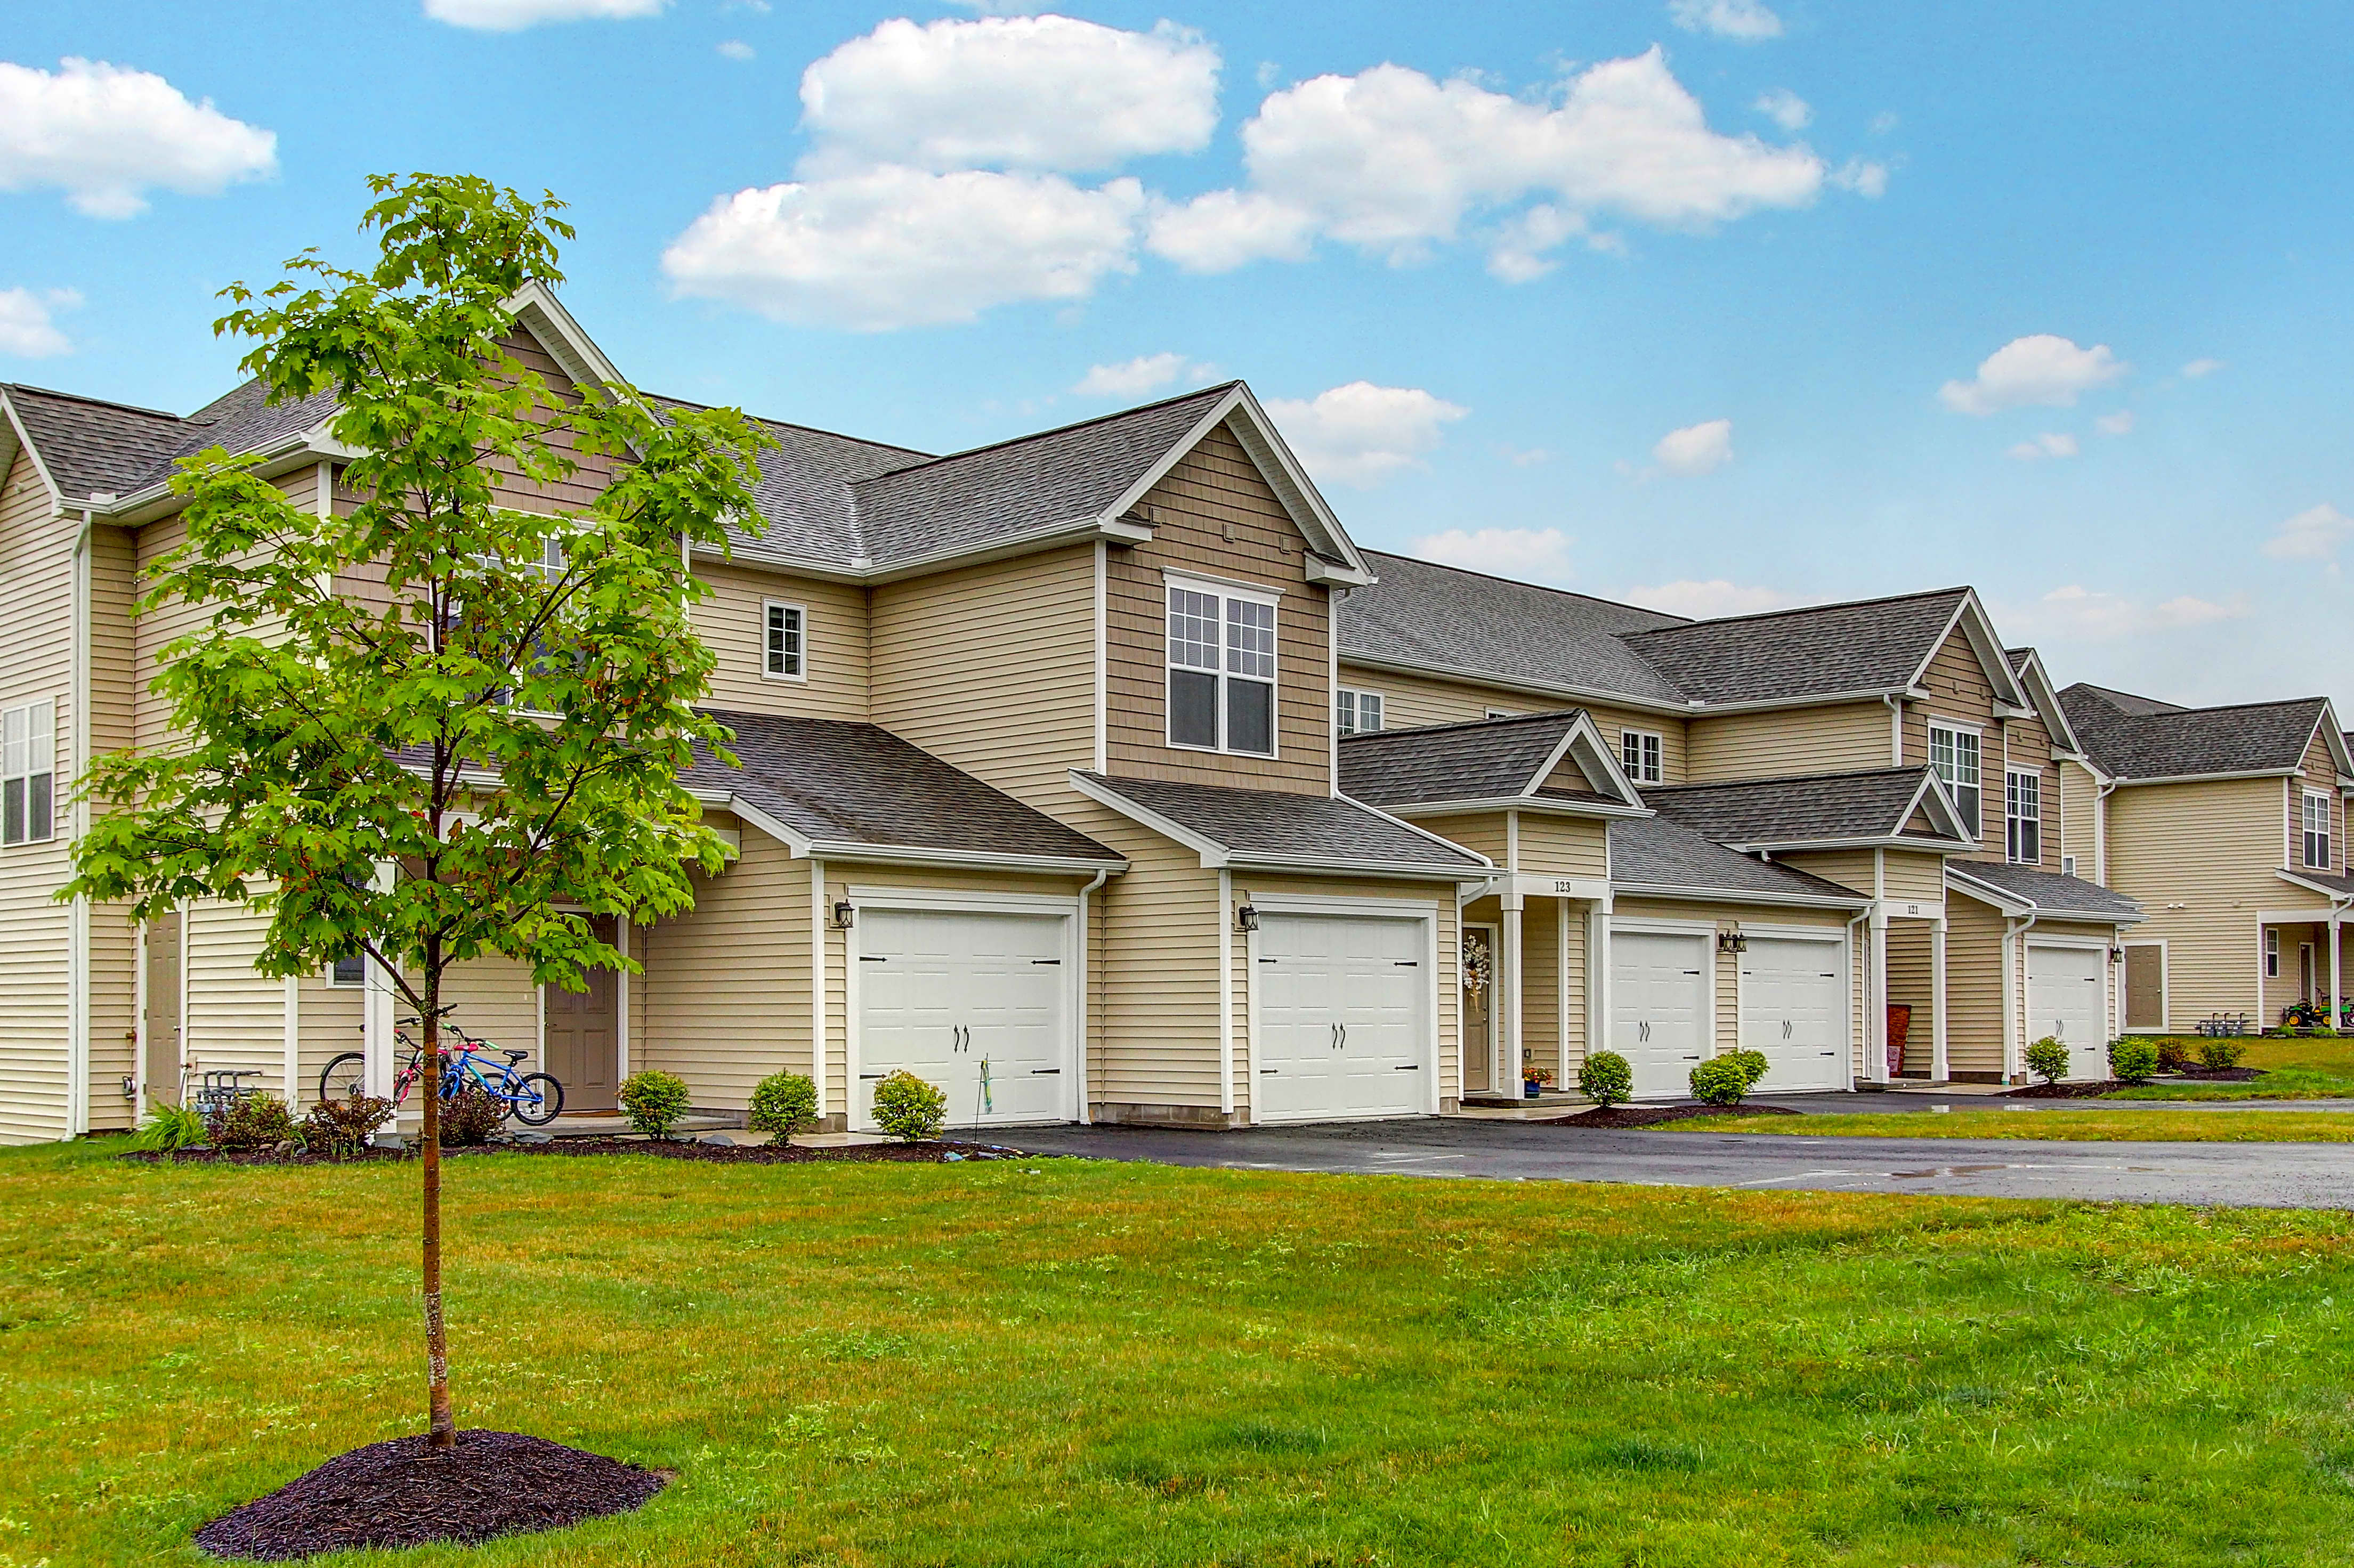 Apartments Near Alfred Fairlawn Hills for Alfred University Students in Alfred, NY